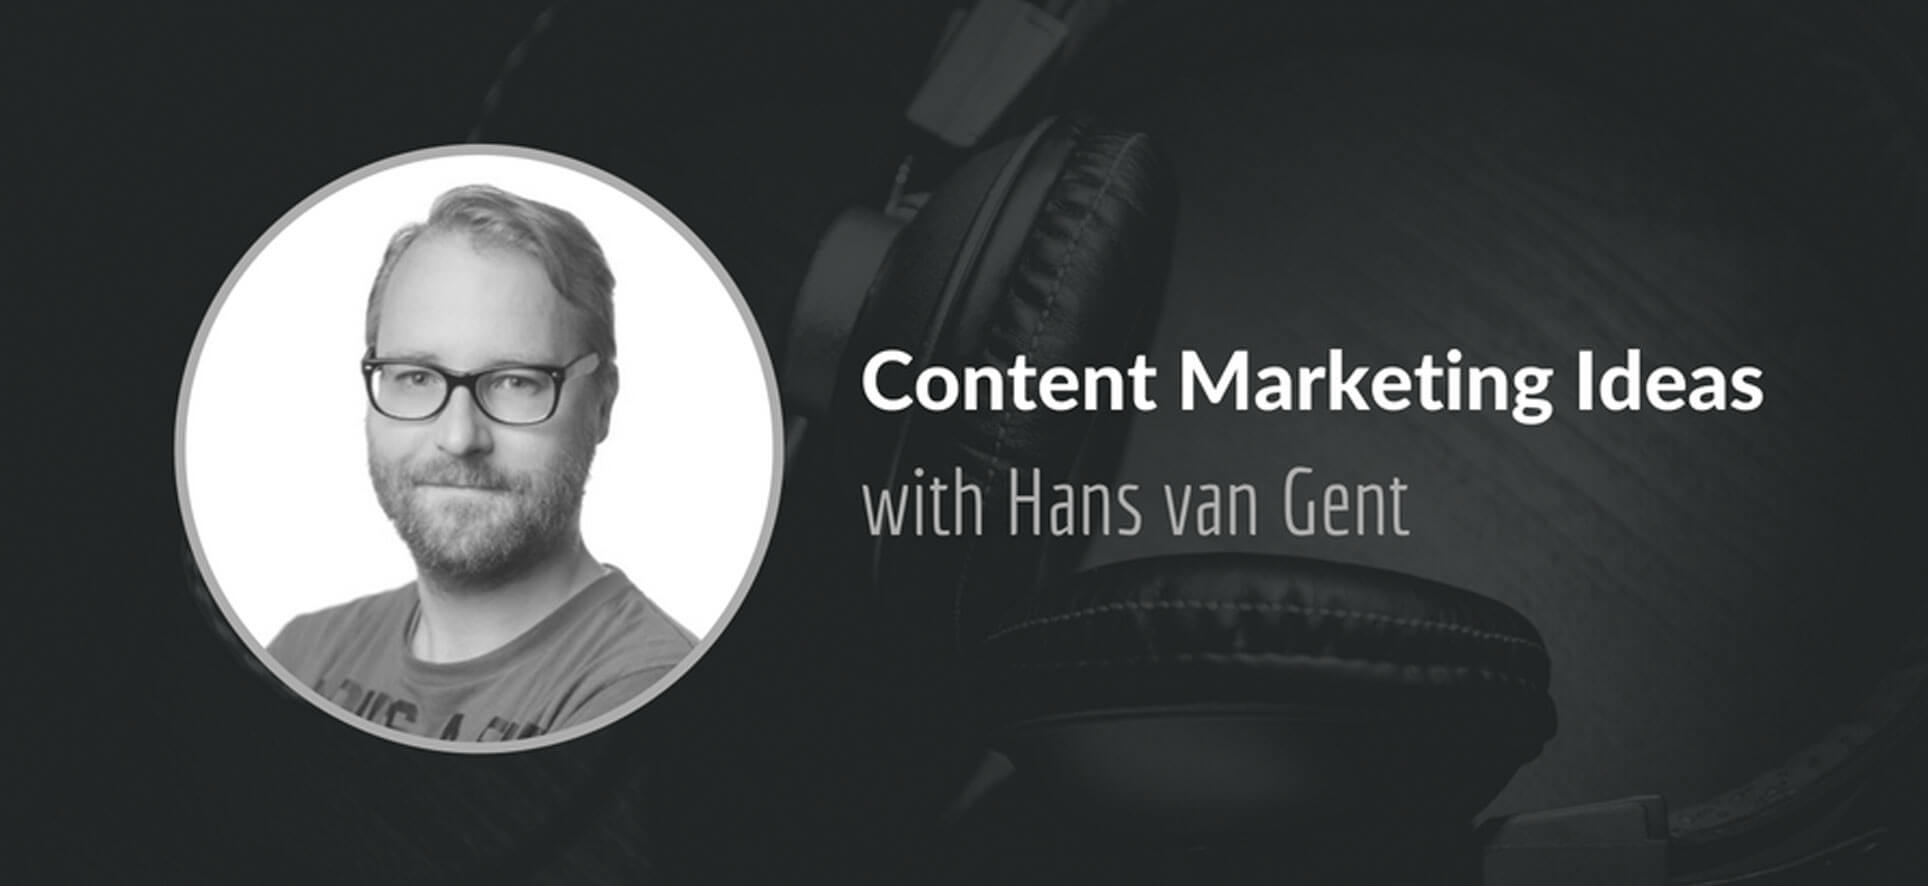 Content Marketing ideas with Hans van Gent